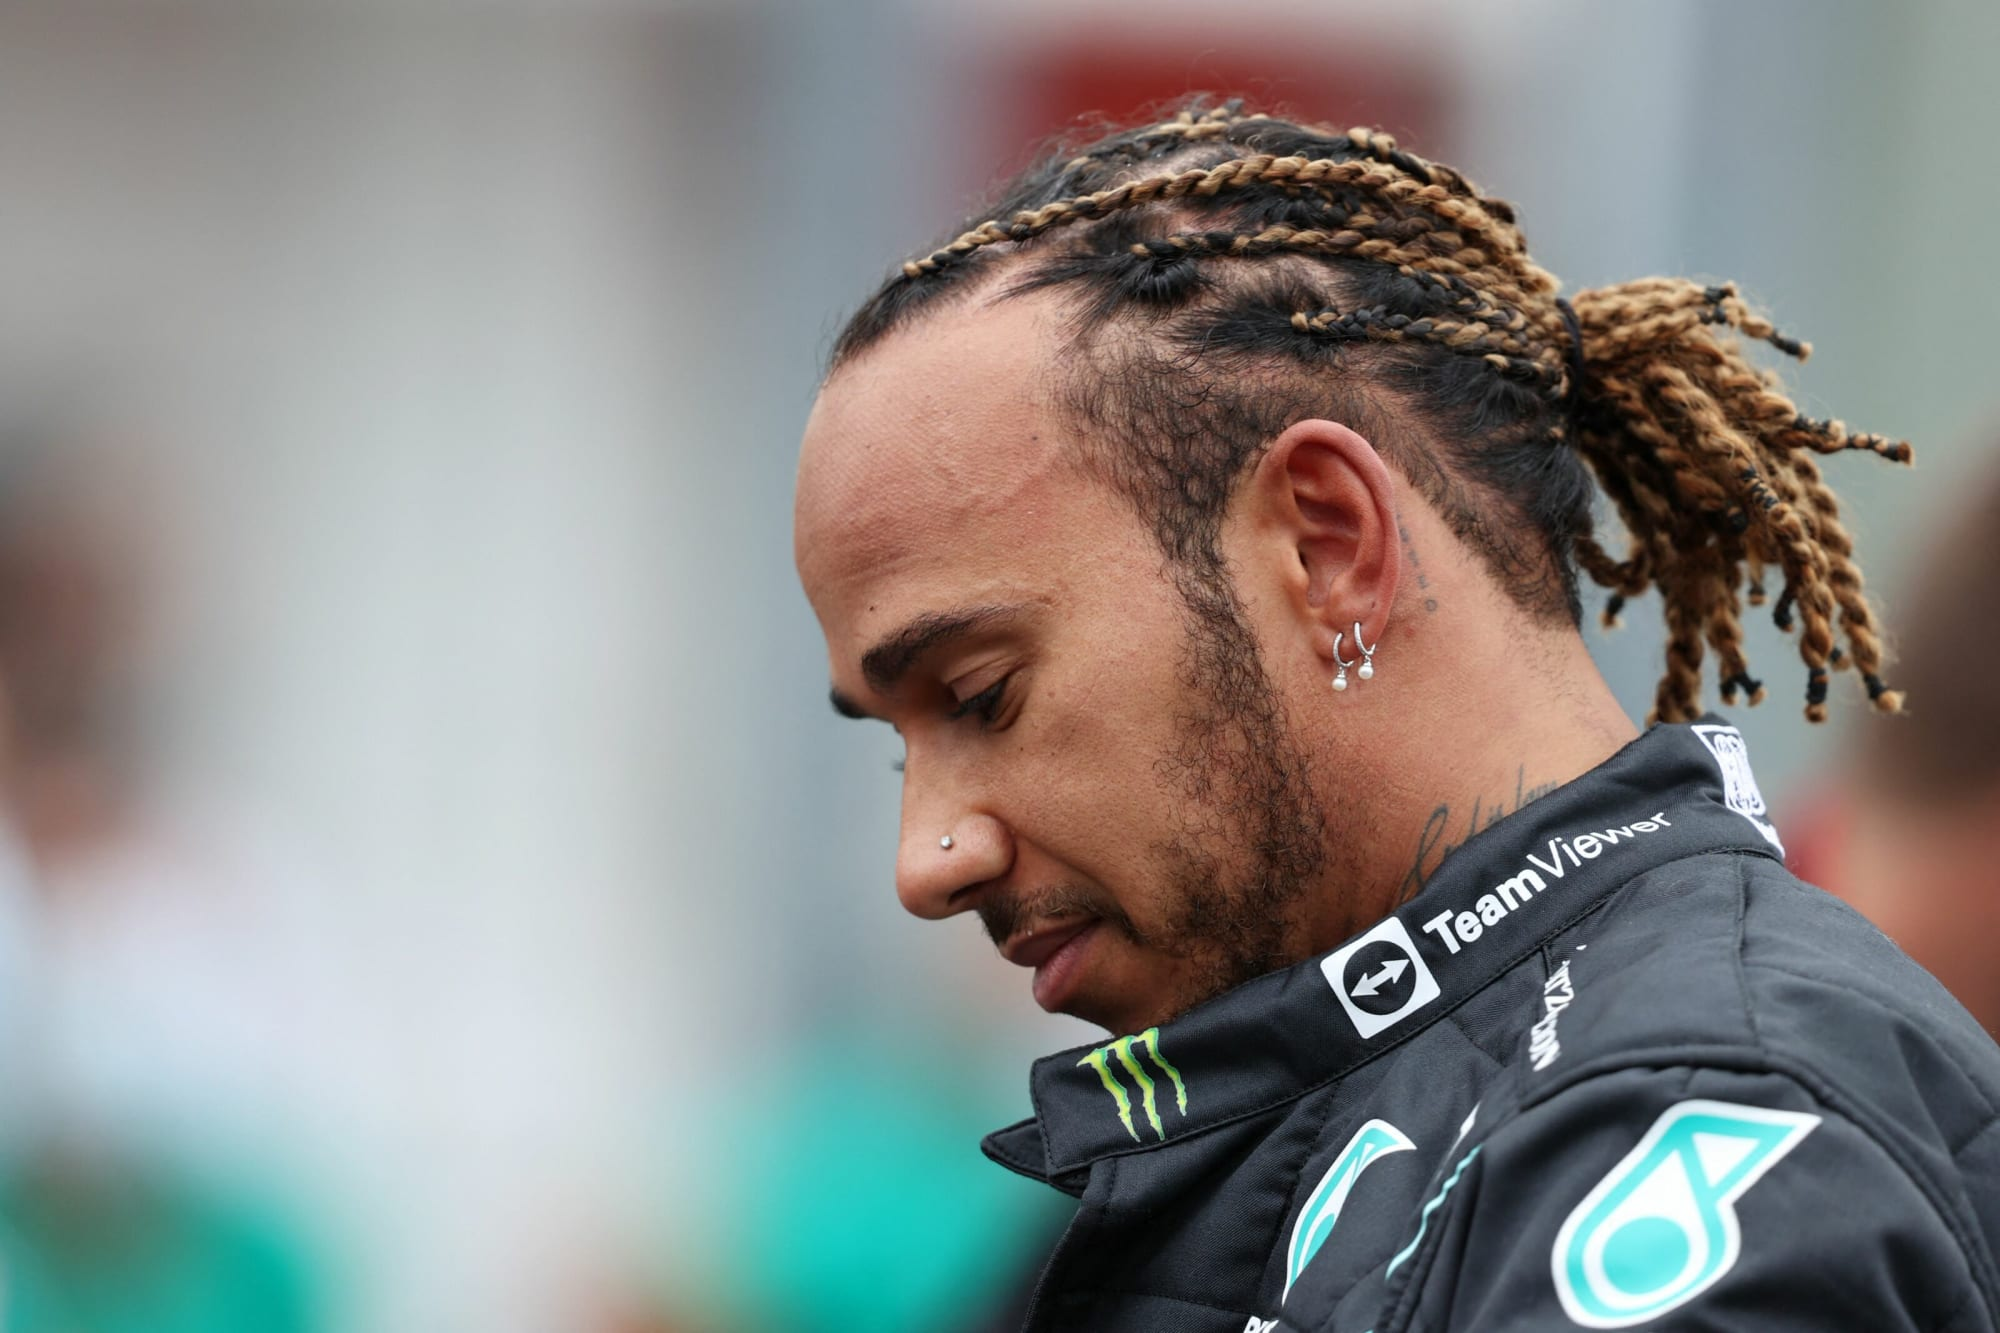 Formula 1 fans show how they really feel about Lewis Hamilton - Beyond the Flag